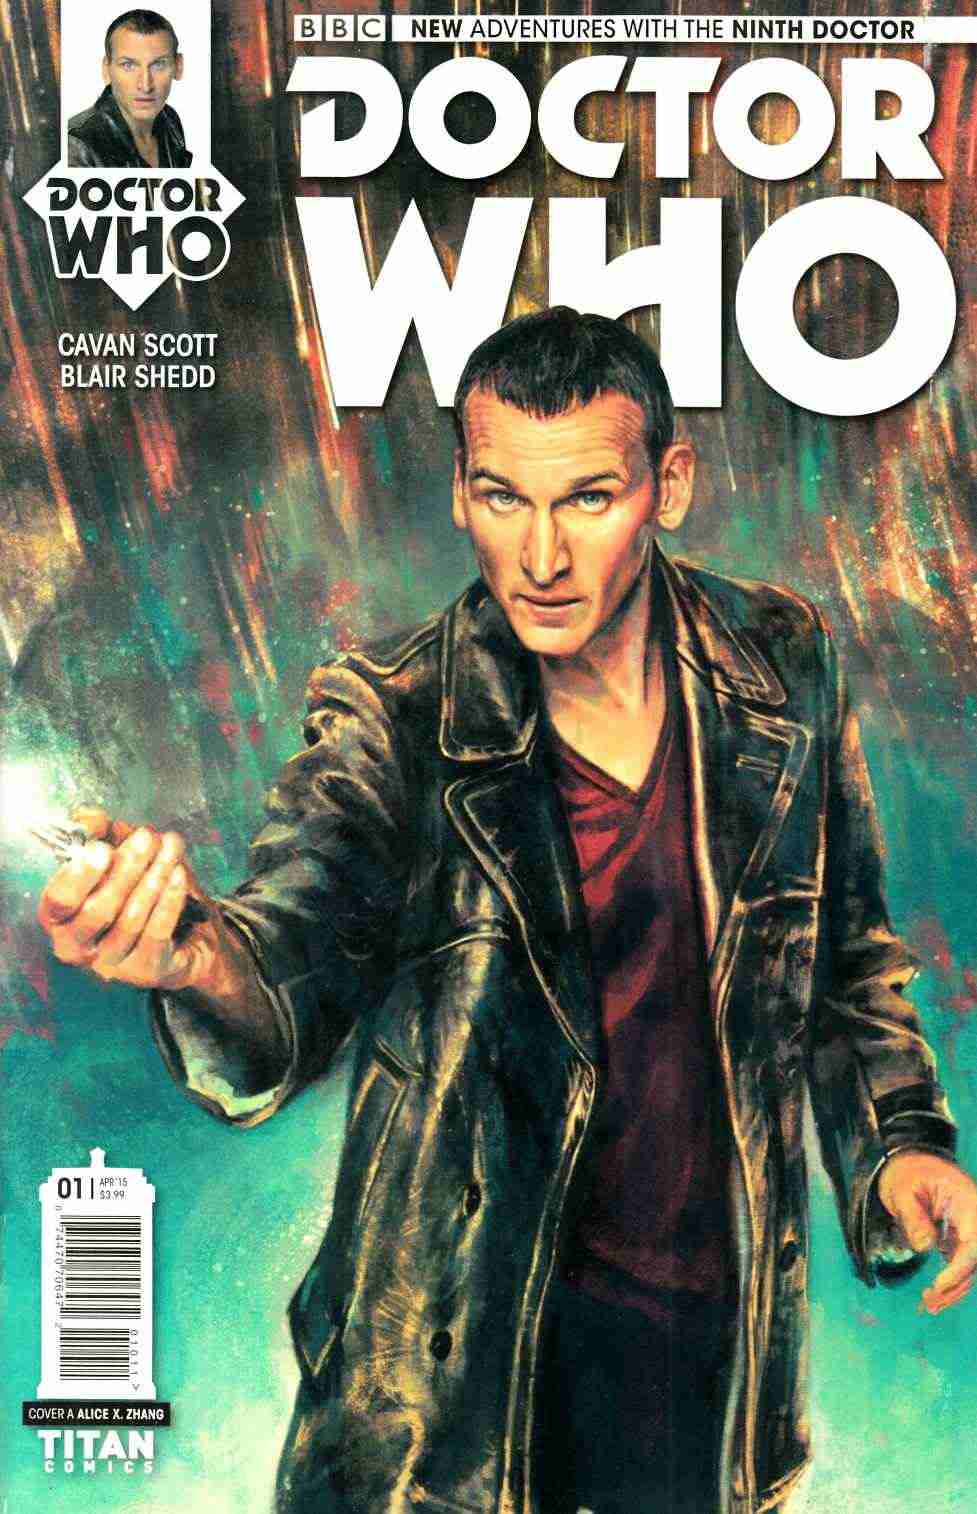 Doctor Who 9th Doctor #1 [Titan Comic] THUMBNAIL